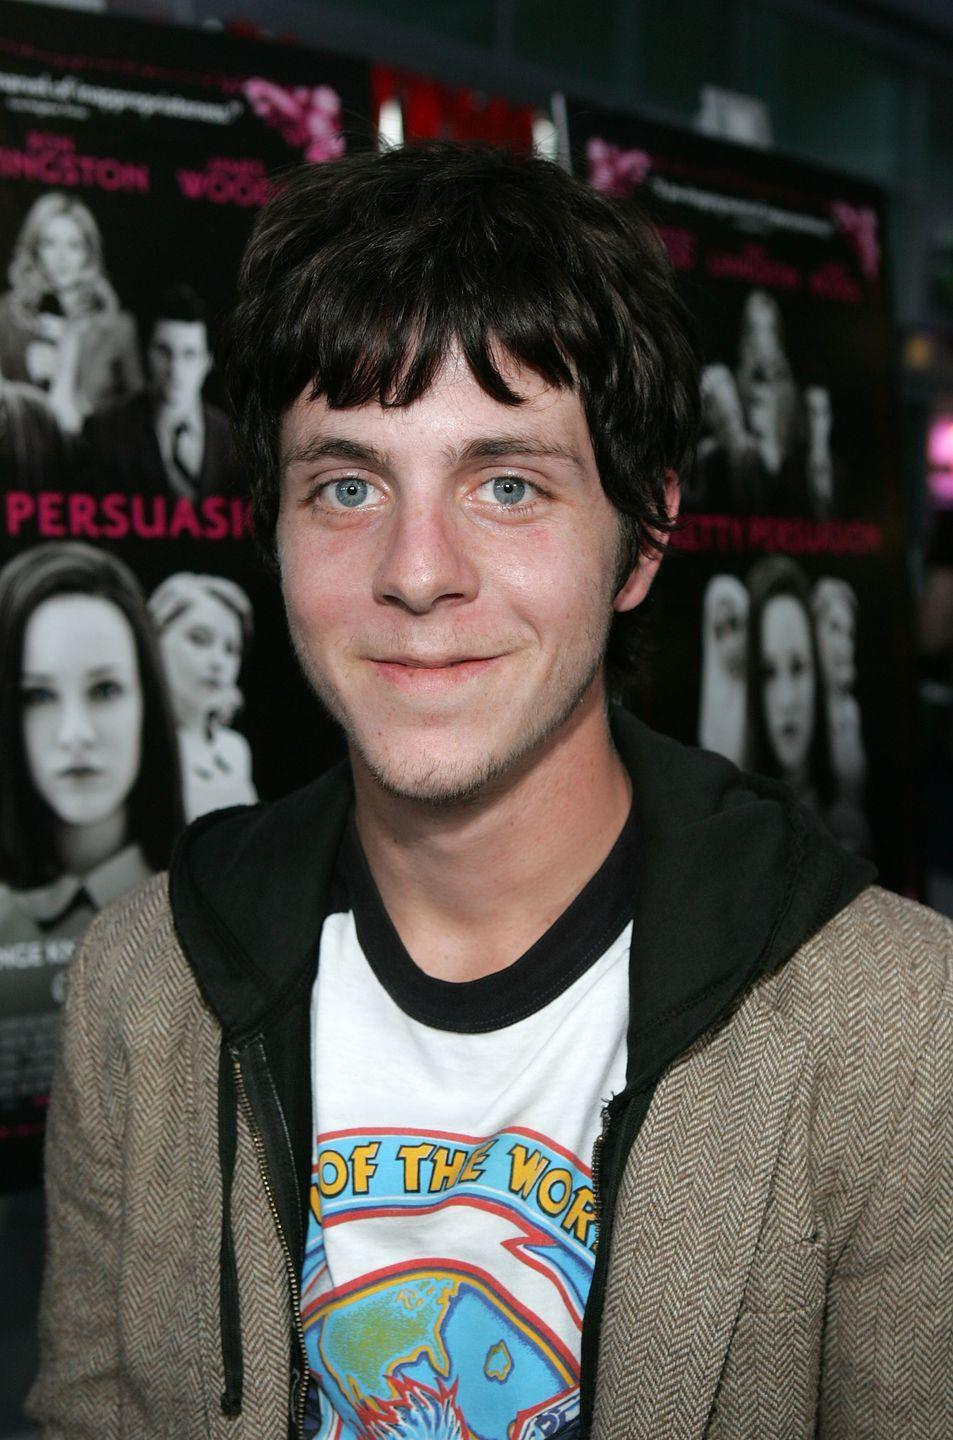 <p>Soon after starring in the cheer classic, McMains appeared in the parody film, <em>Not Another Teen Movie</em>, which coincidentally mocked <em>Bring It On</em>. He also landed several reoccurring roles on popular TV shows, from <em>90210 </em>to <em>Monk</em>. </p>